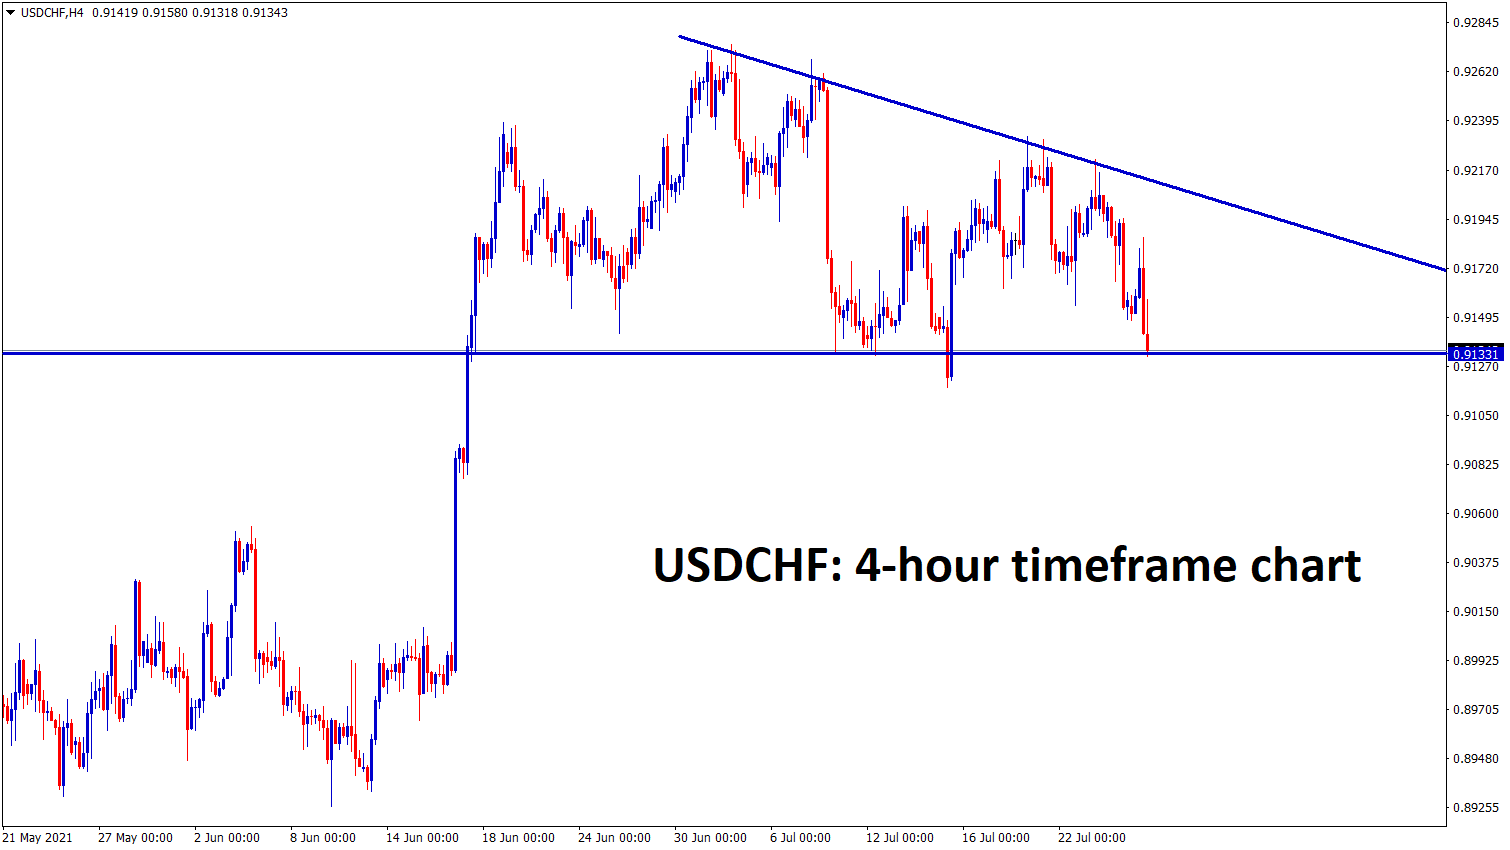 USDCHF has formed a descending Triangle pattern in h4